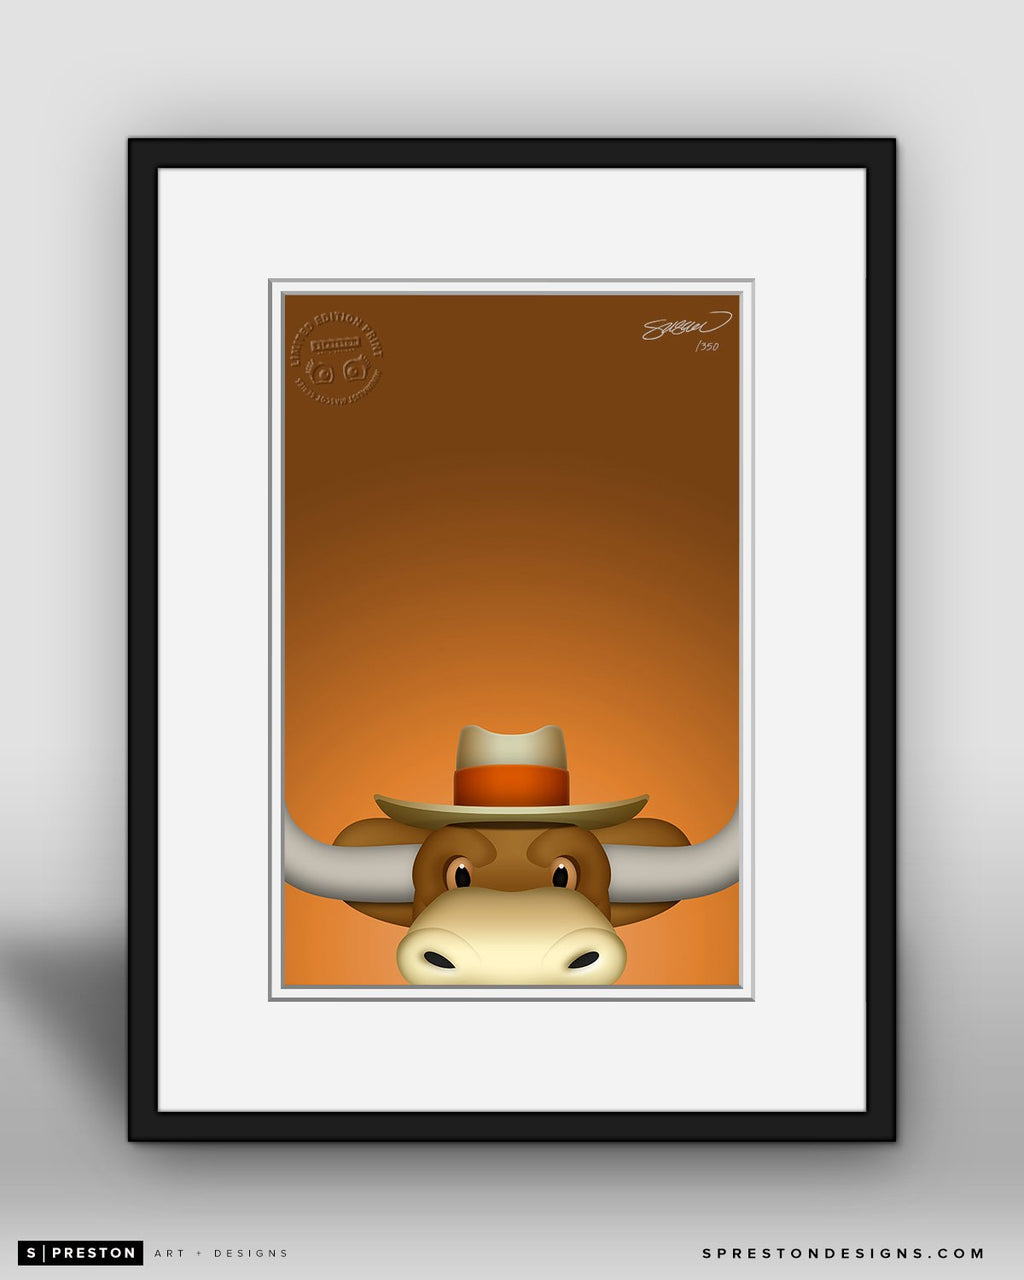 Minimalist Hook'em by S. Preston - official mascot of the Texas Longhorns